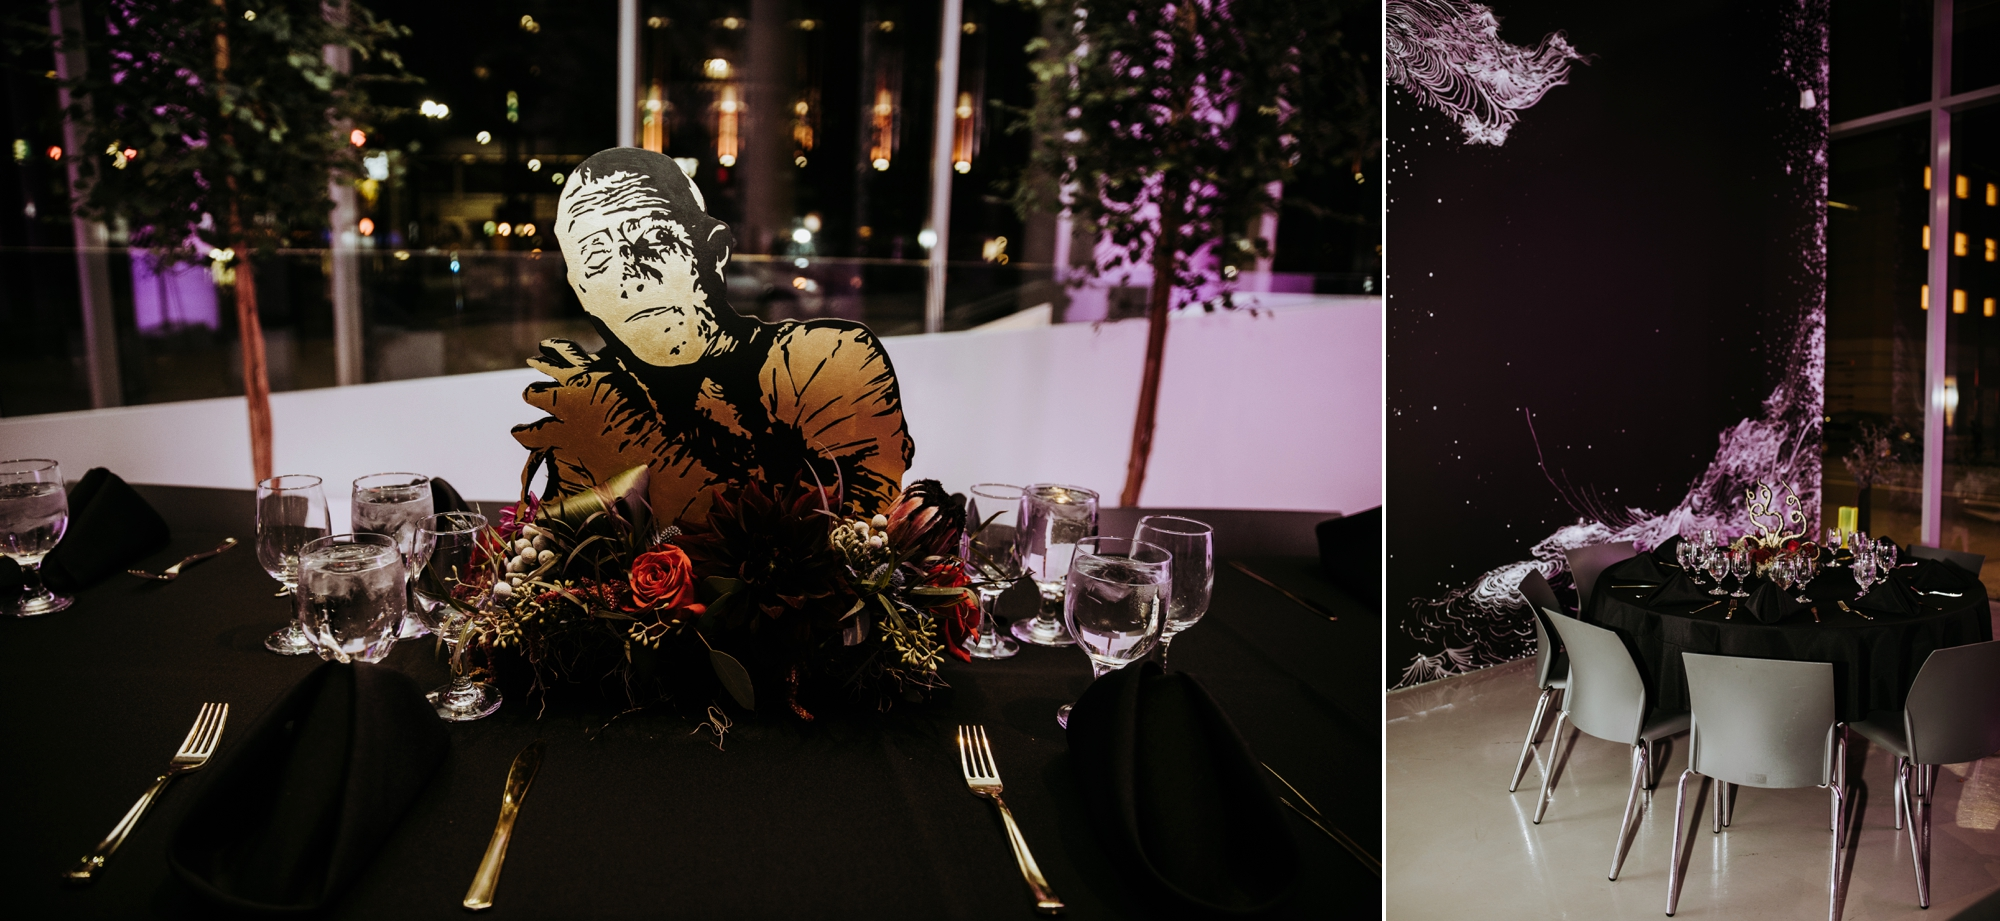 contemporary-art-center-art-deco-halloween-wedding-_0041.jpg